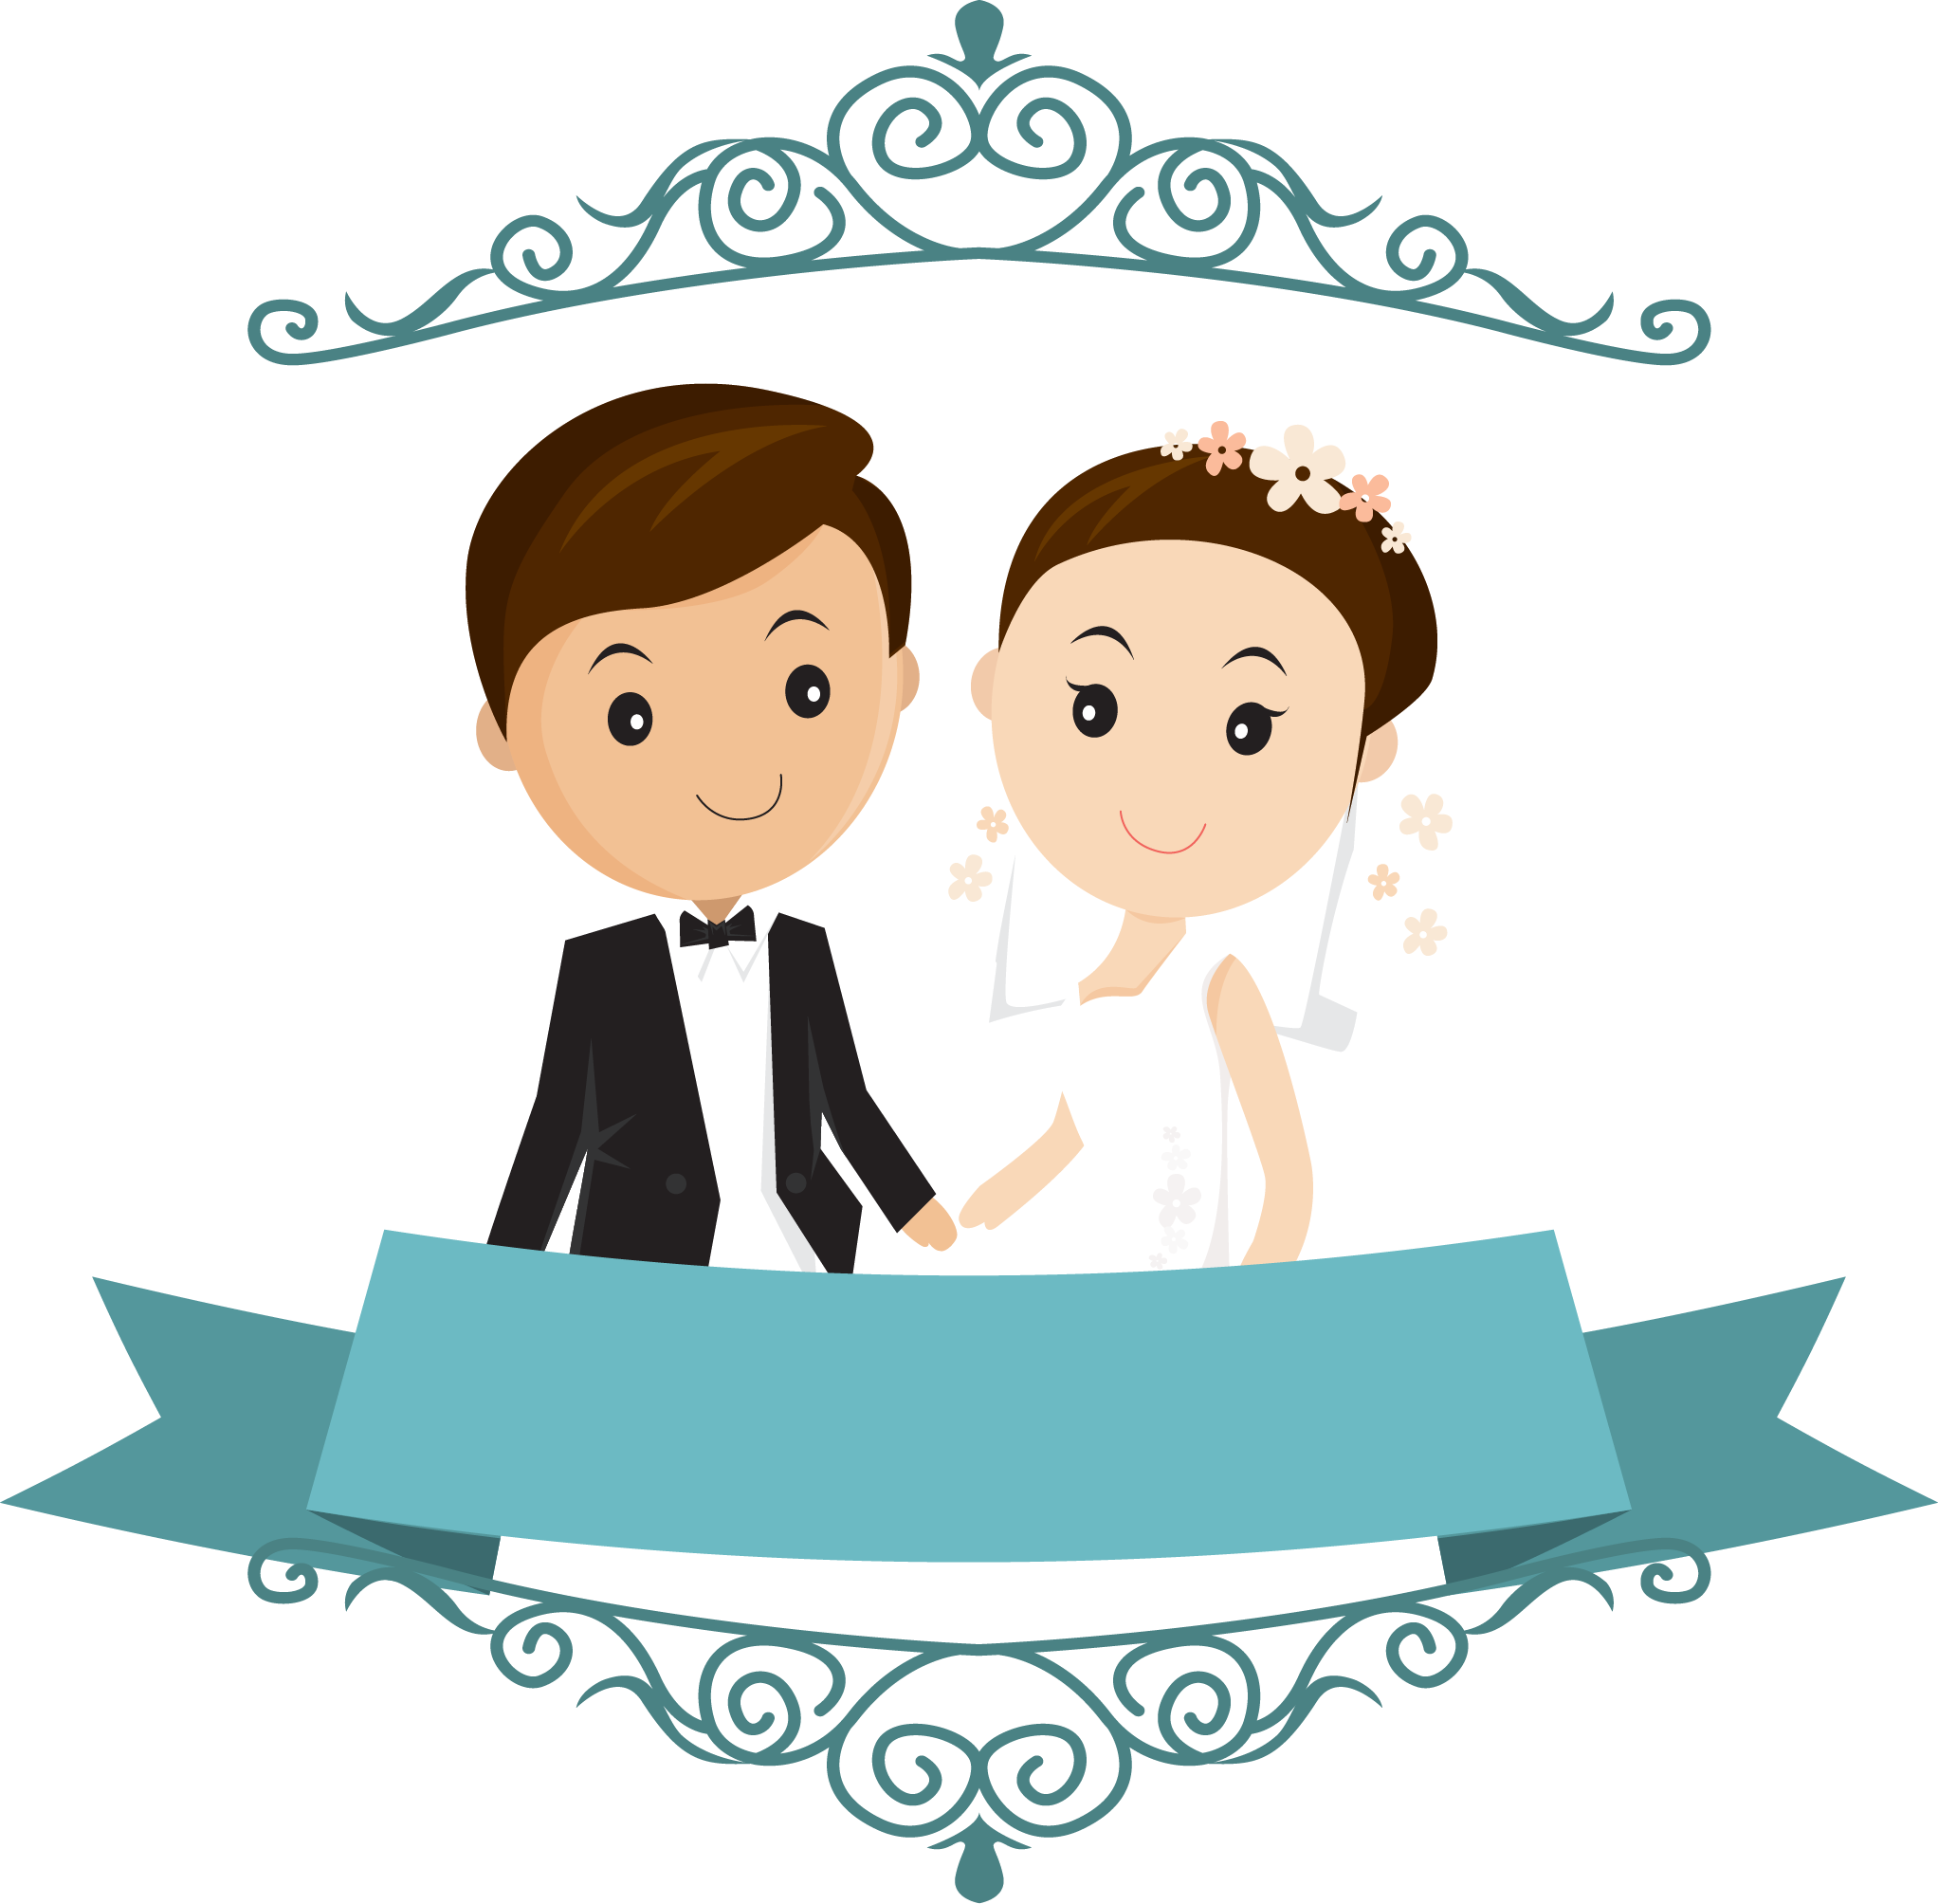 Engagement clipart wedding wishes. Cute couple cartoon floral